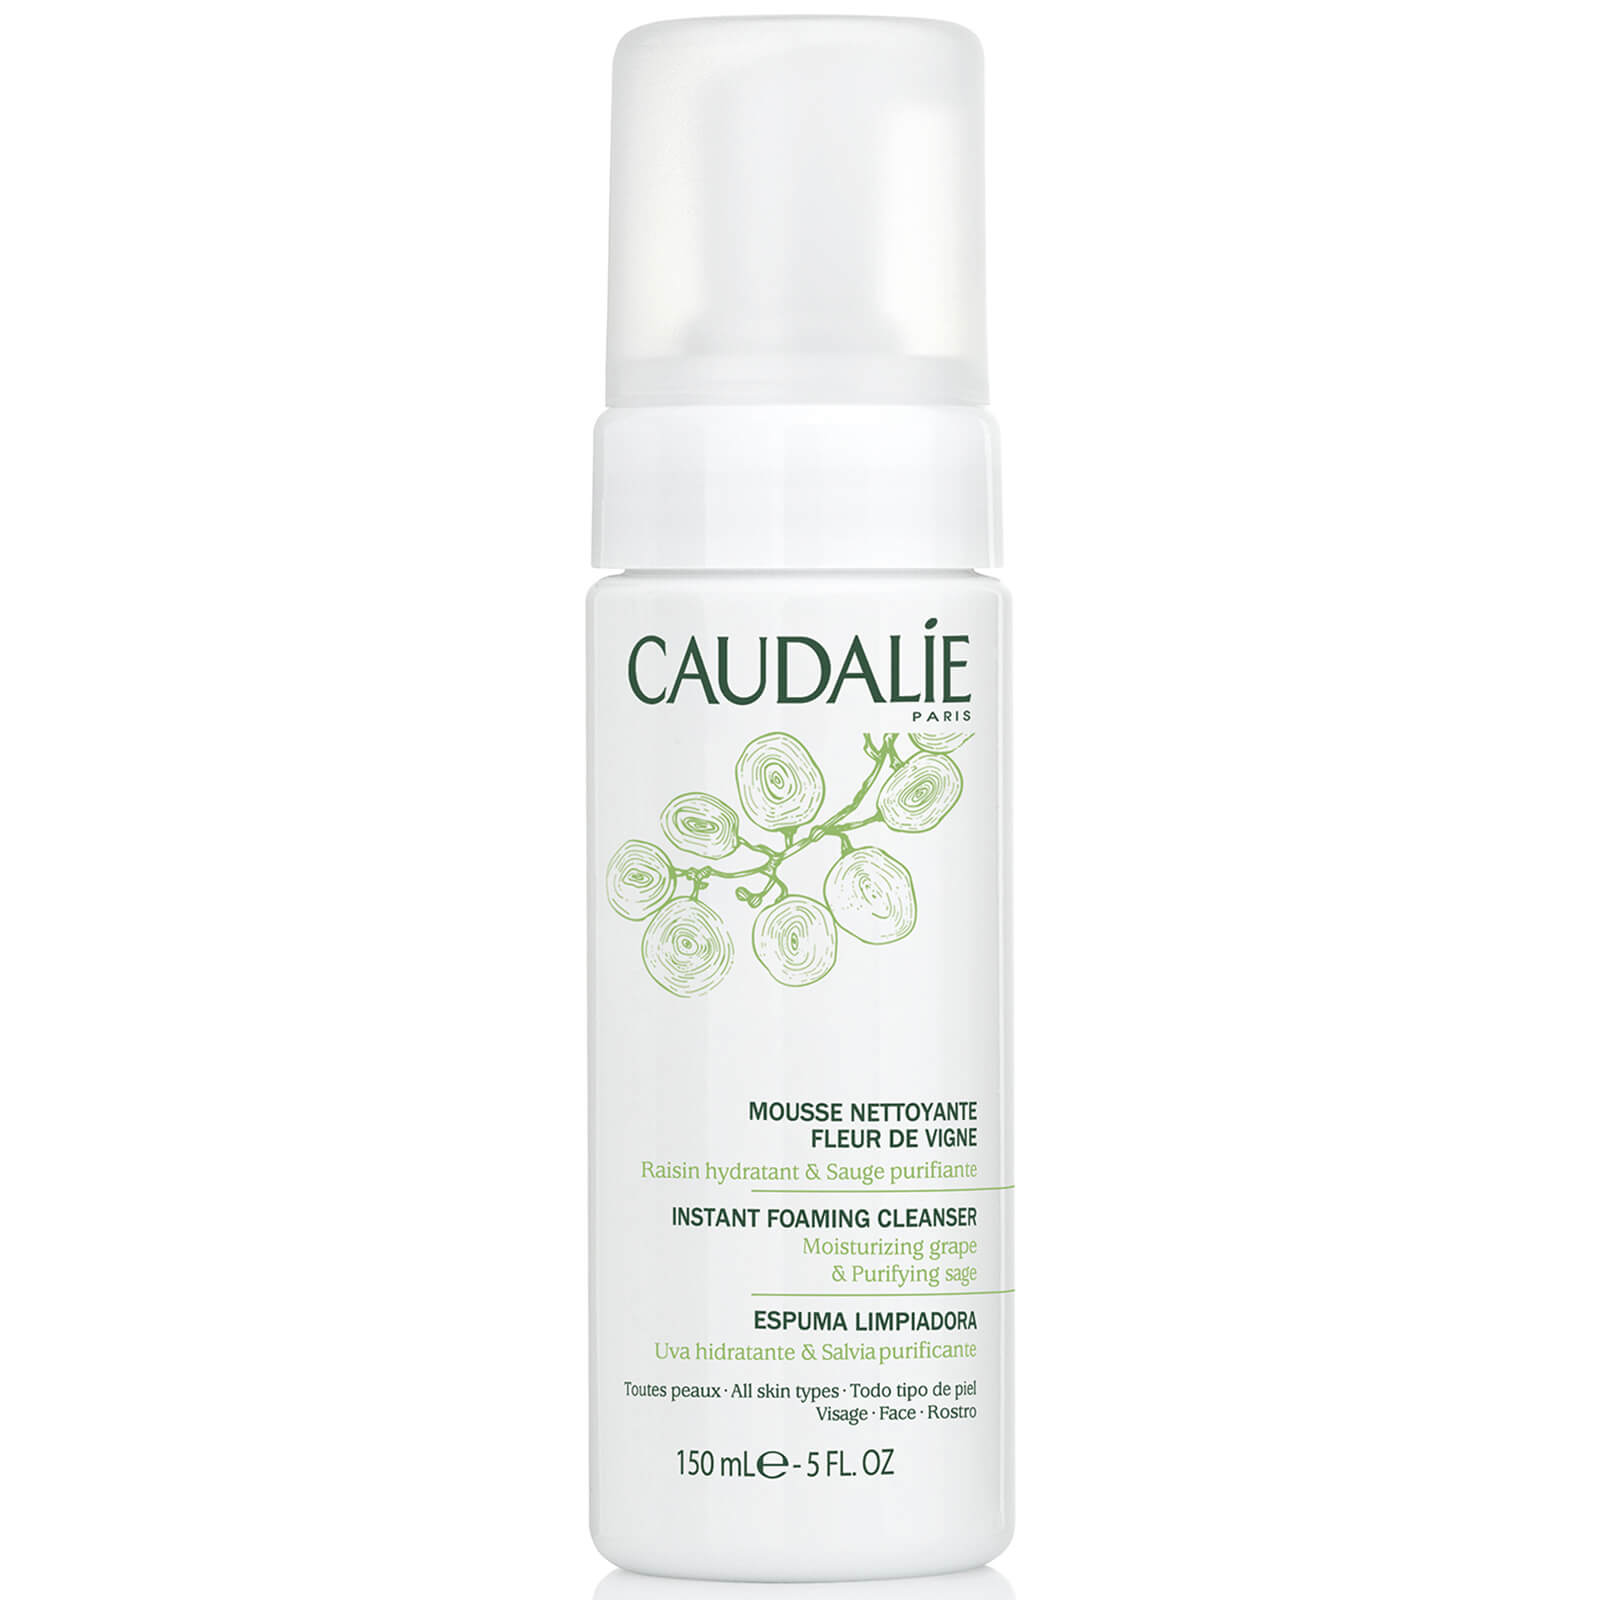 Caudalie Instant Foaming Cleanser 150ml Free Shipping Clean Clear Face Wash 100ml Description Refresh Your Skin With